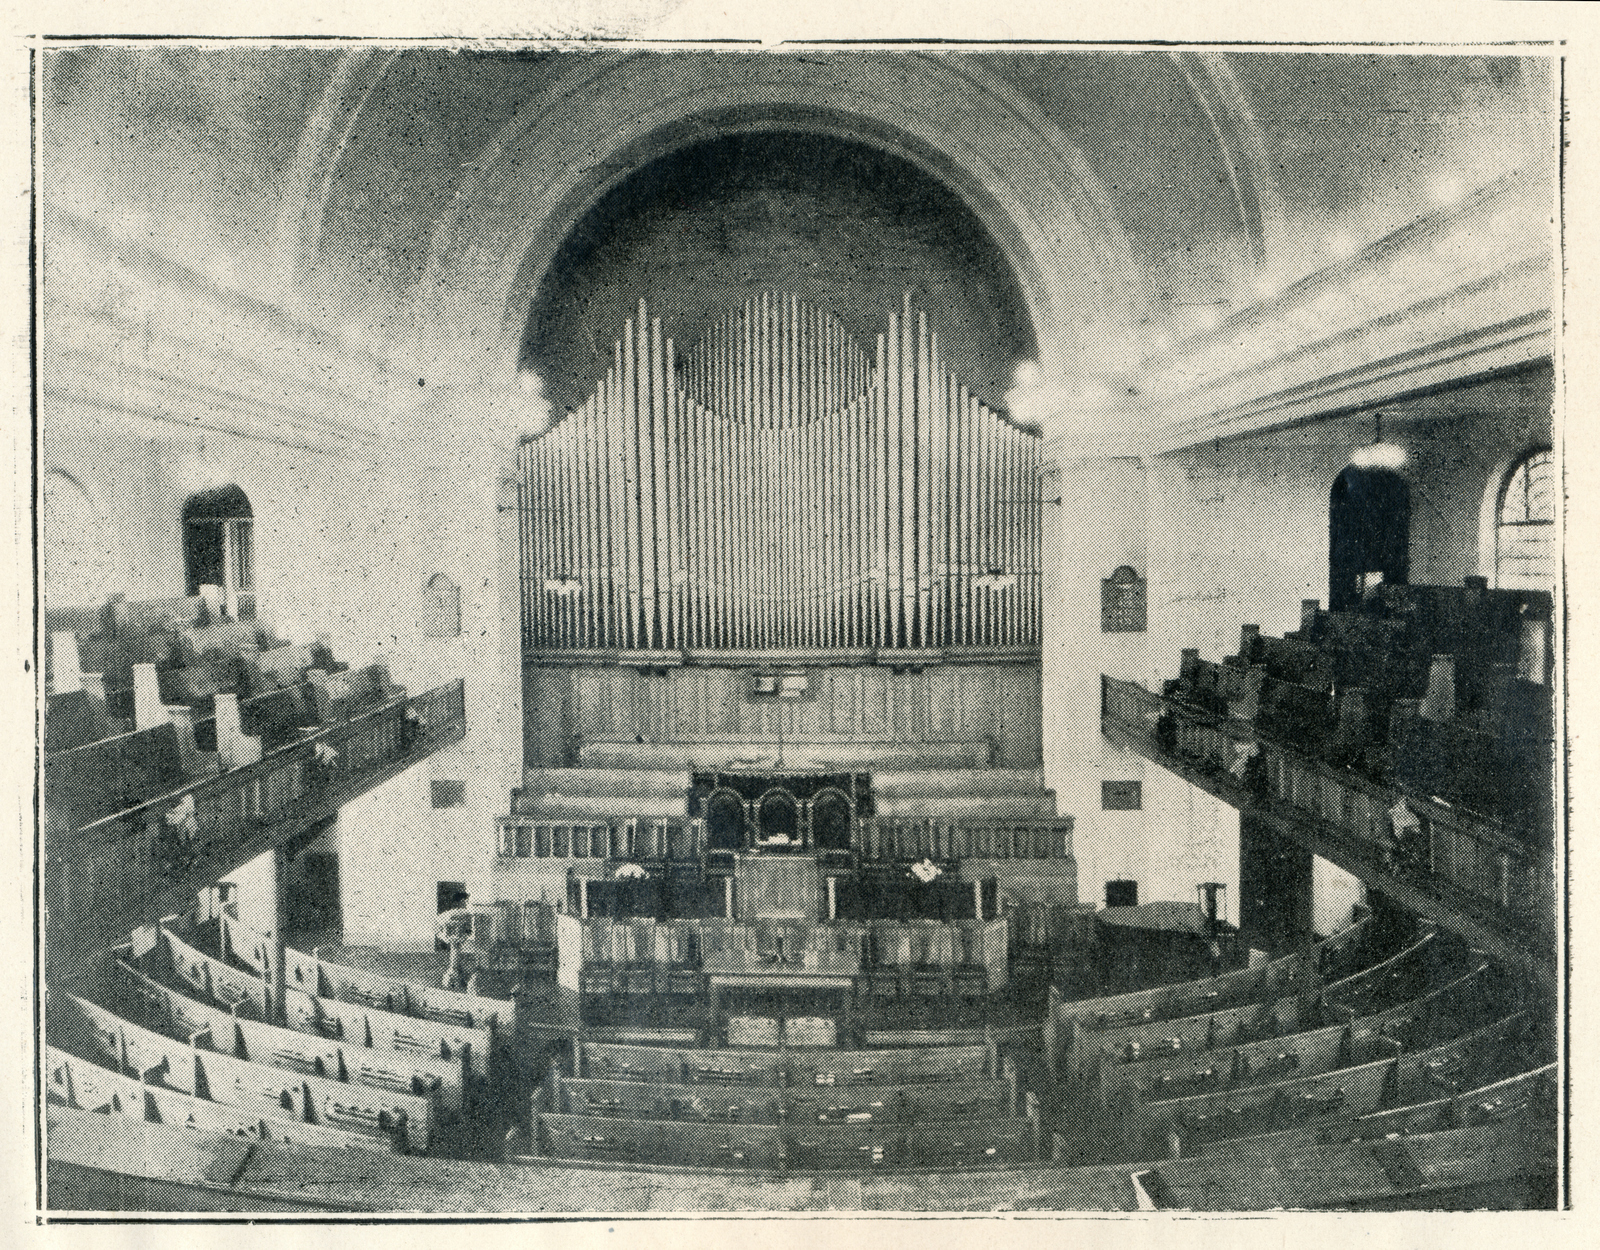 Circa 1928, scanned from the St. Andrew's Church Annual Report